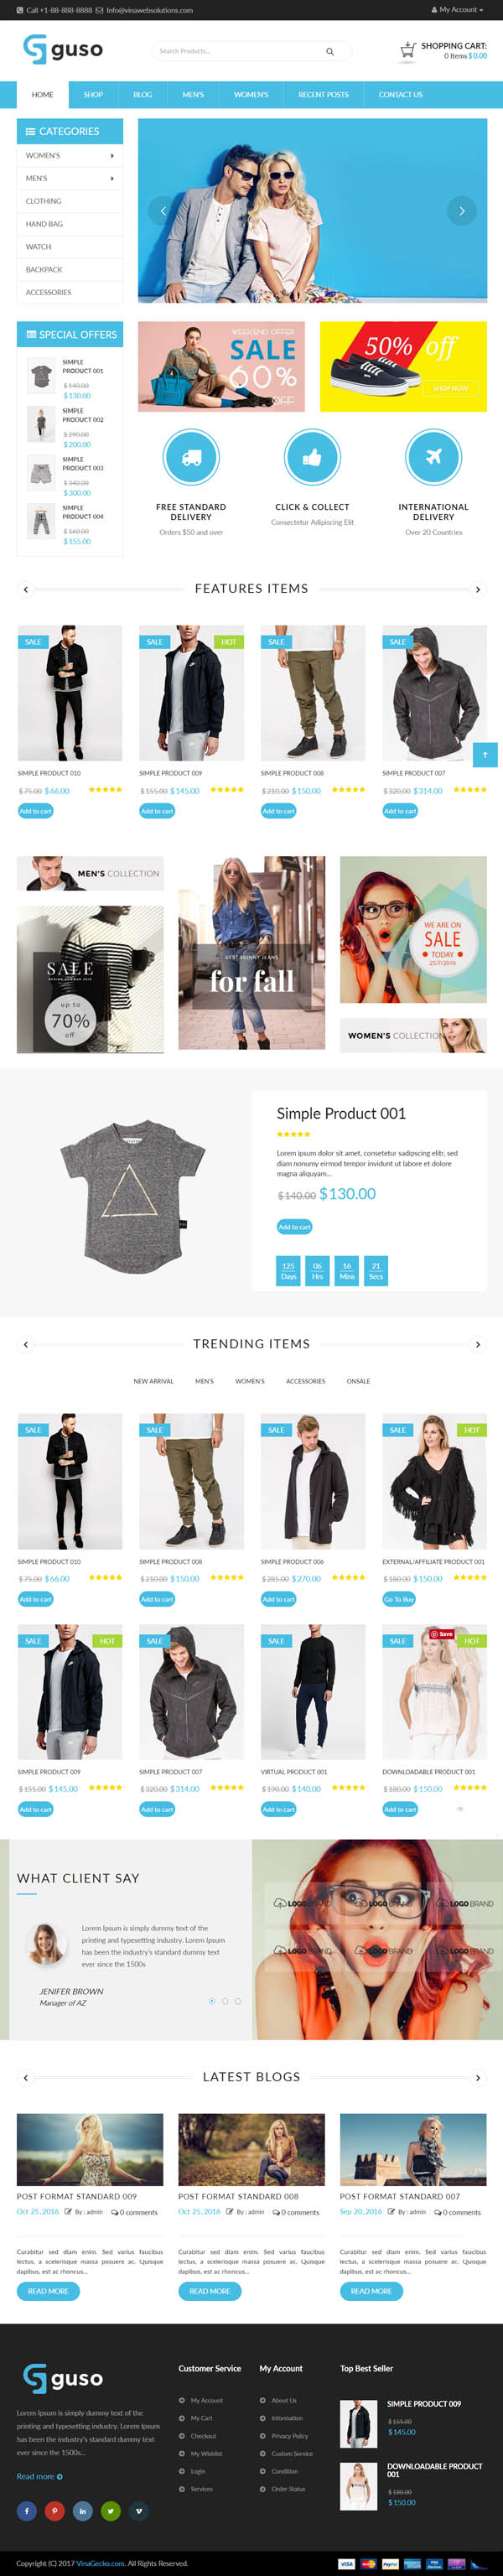 VG Guso : Fashion WooCommerce WordPress Theme